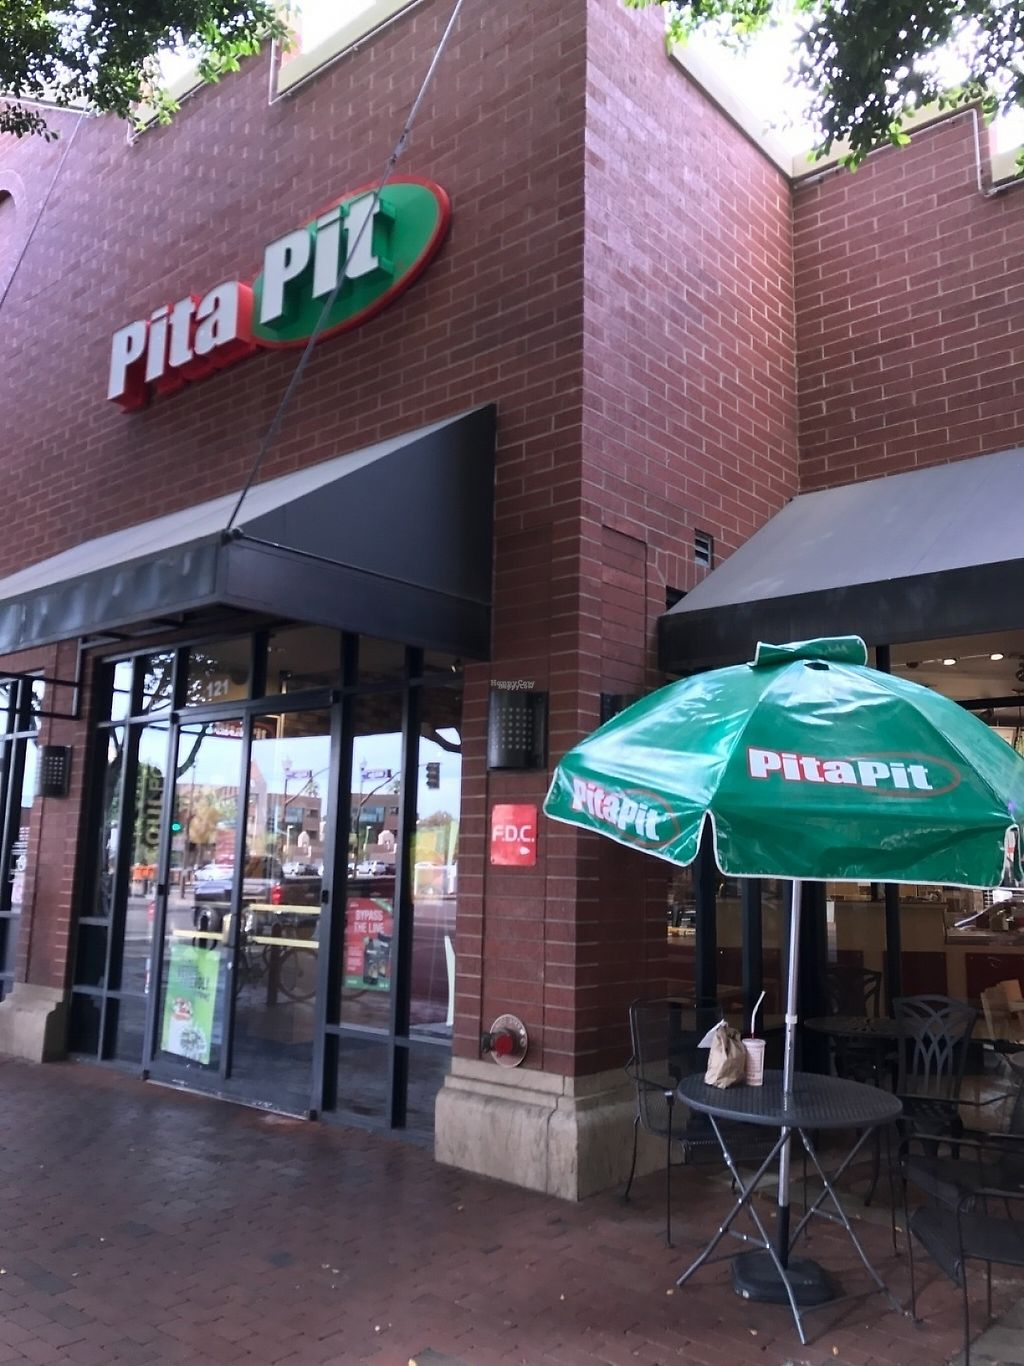 "Photo of Pita Pit  by <a href=""/members/profile/Tigra220"">Tigra220</a> <br/>Outside <br/> March 25, 2017  - <a href='/contact/abuse/image/89157/240638'>Report</a>"